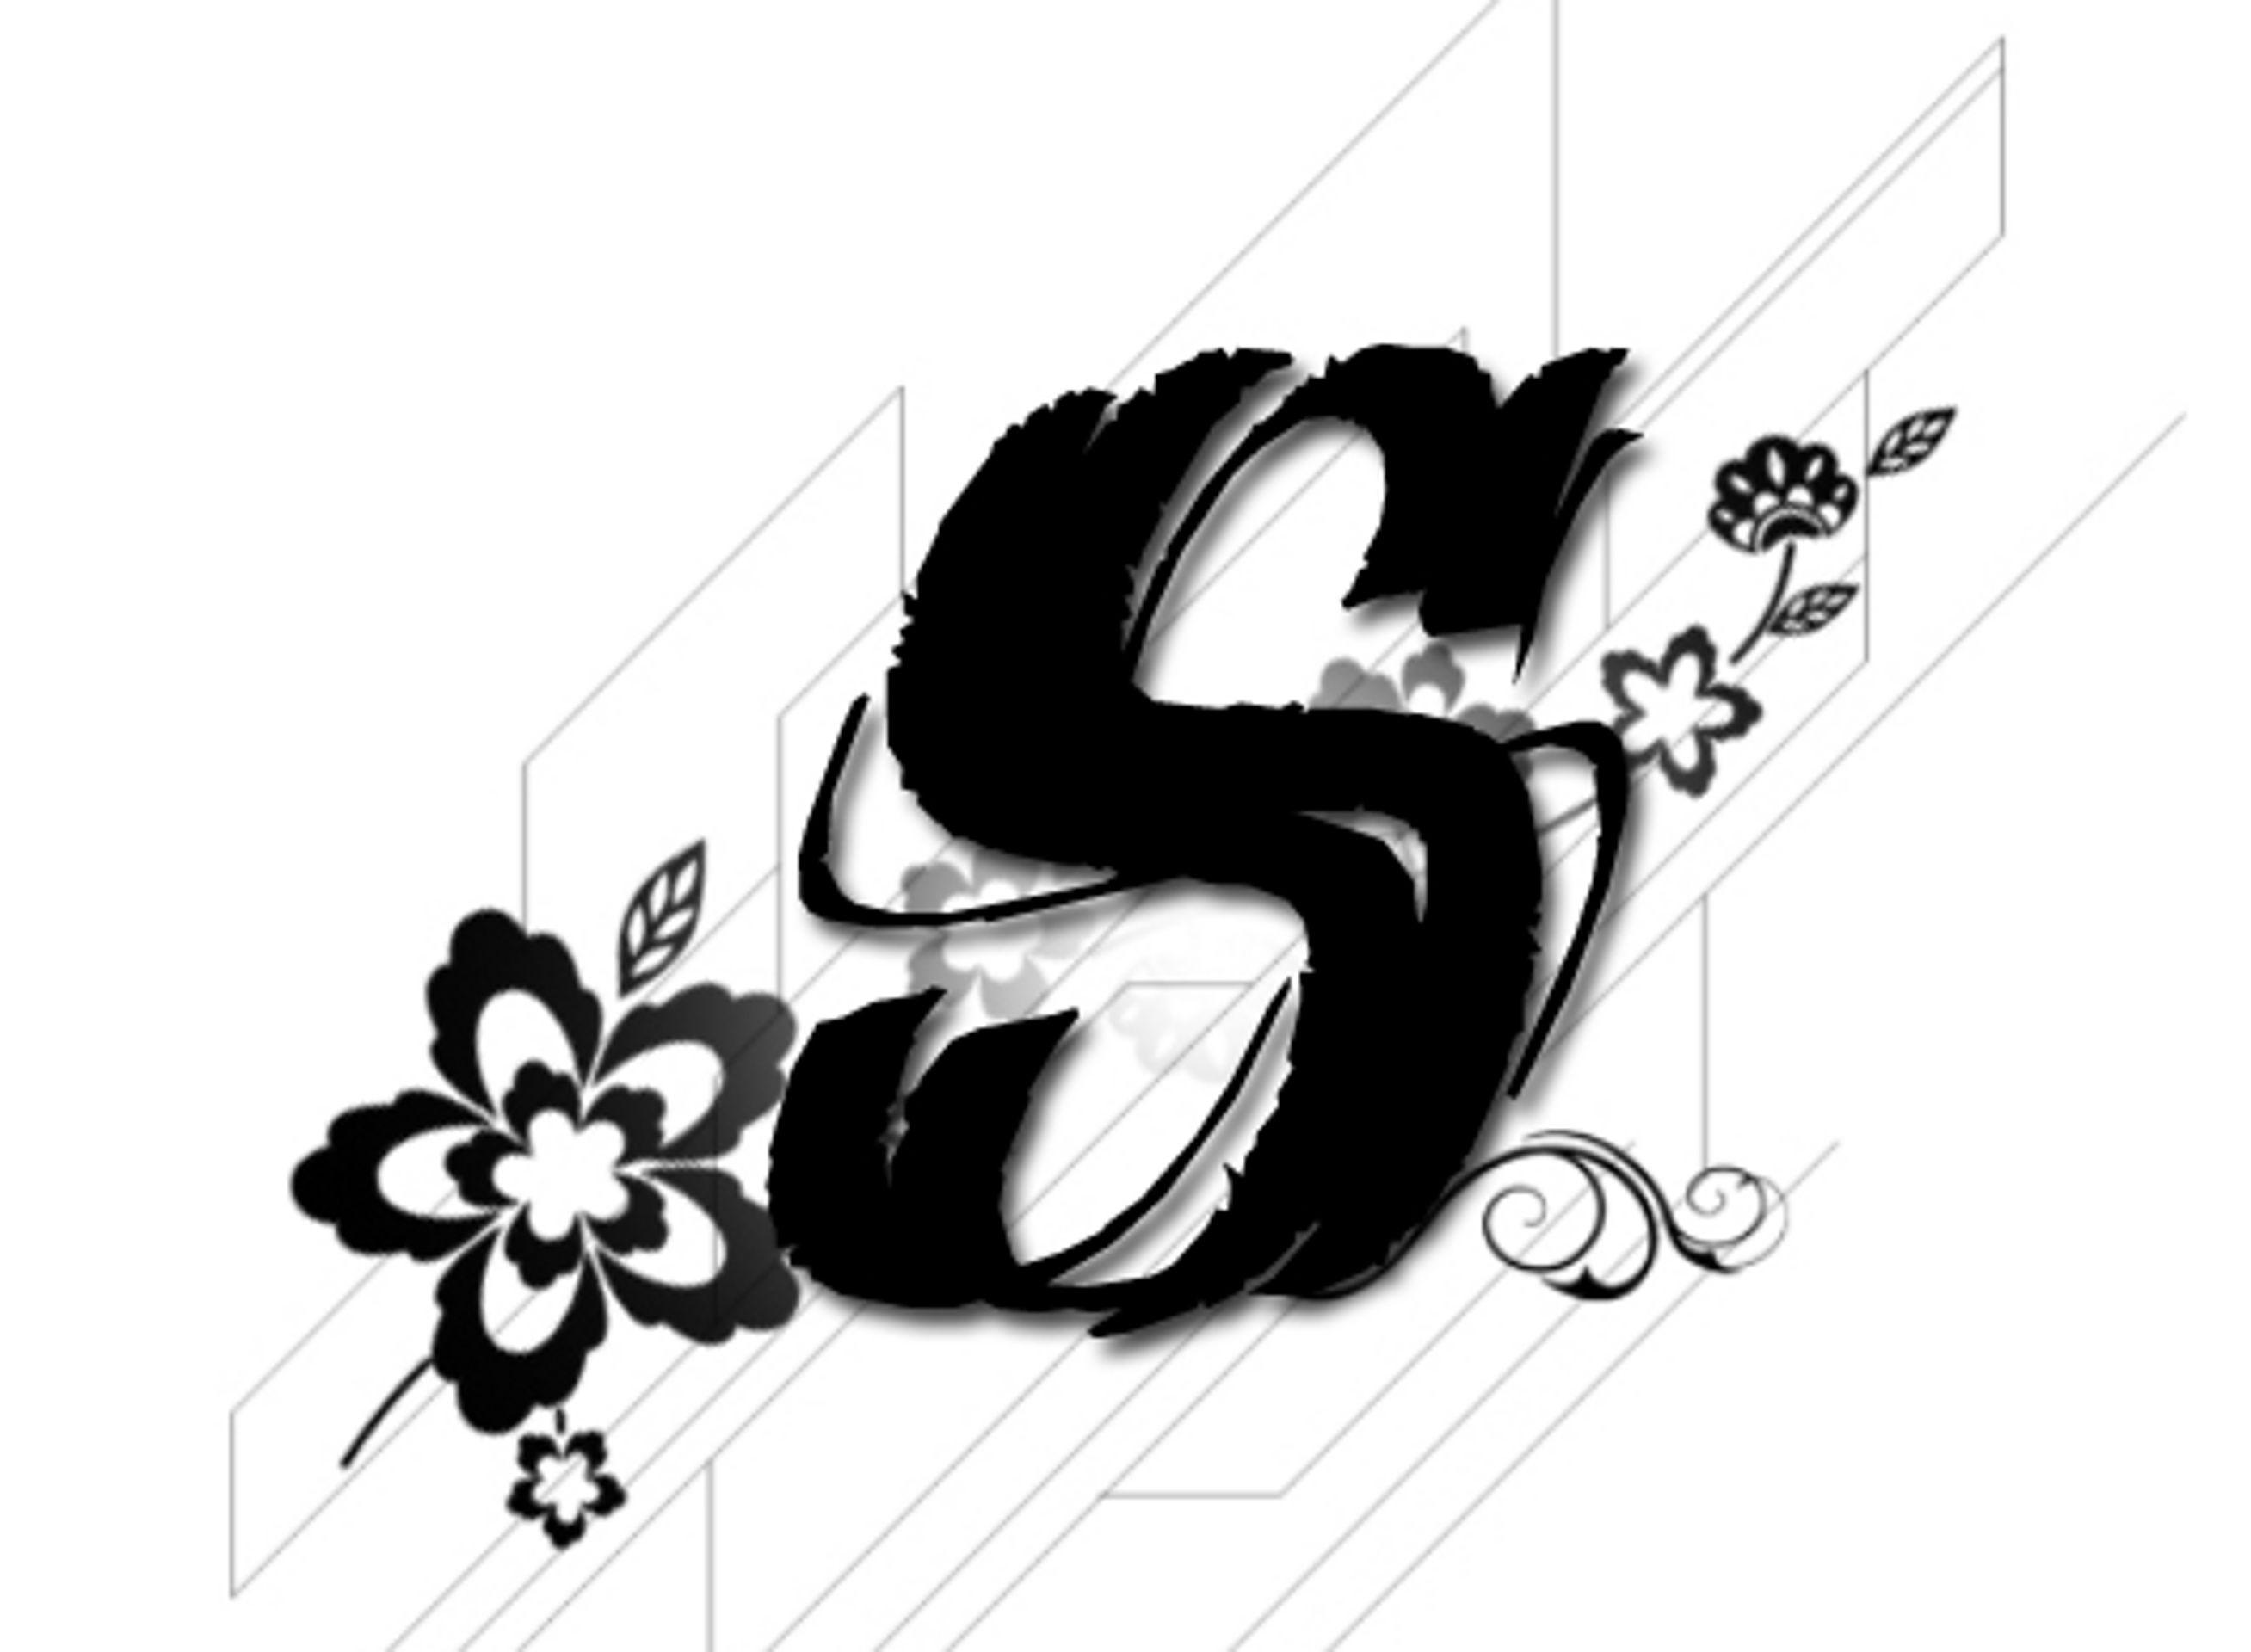 Stylish S Letter Wallpaper Backgrounds  Wallpaper Cave